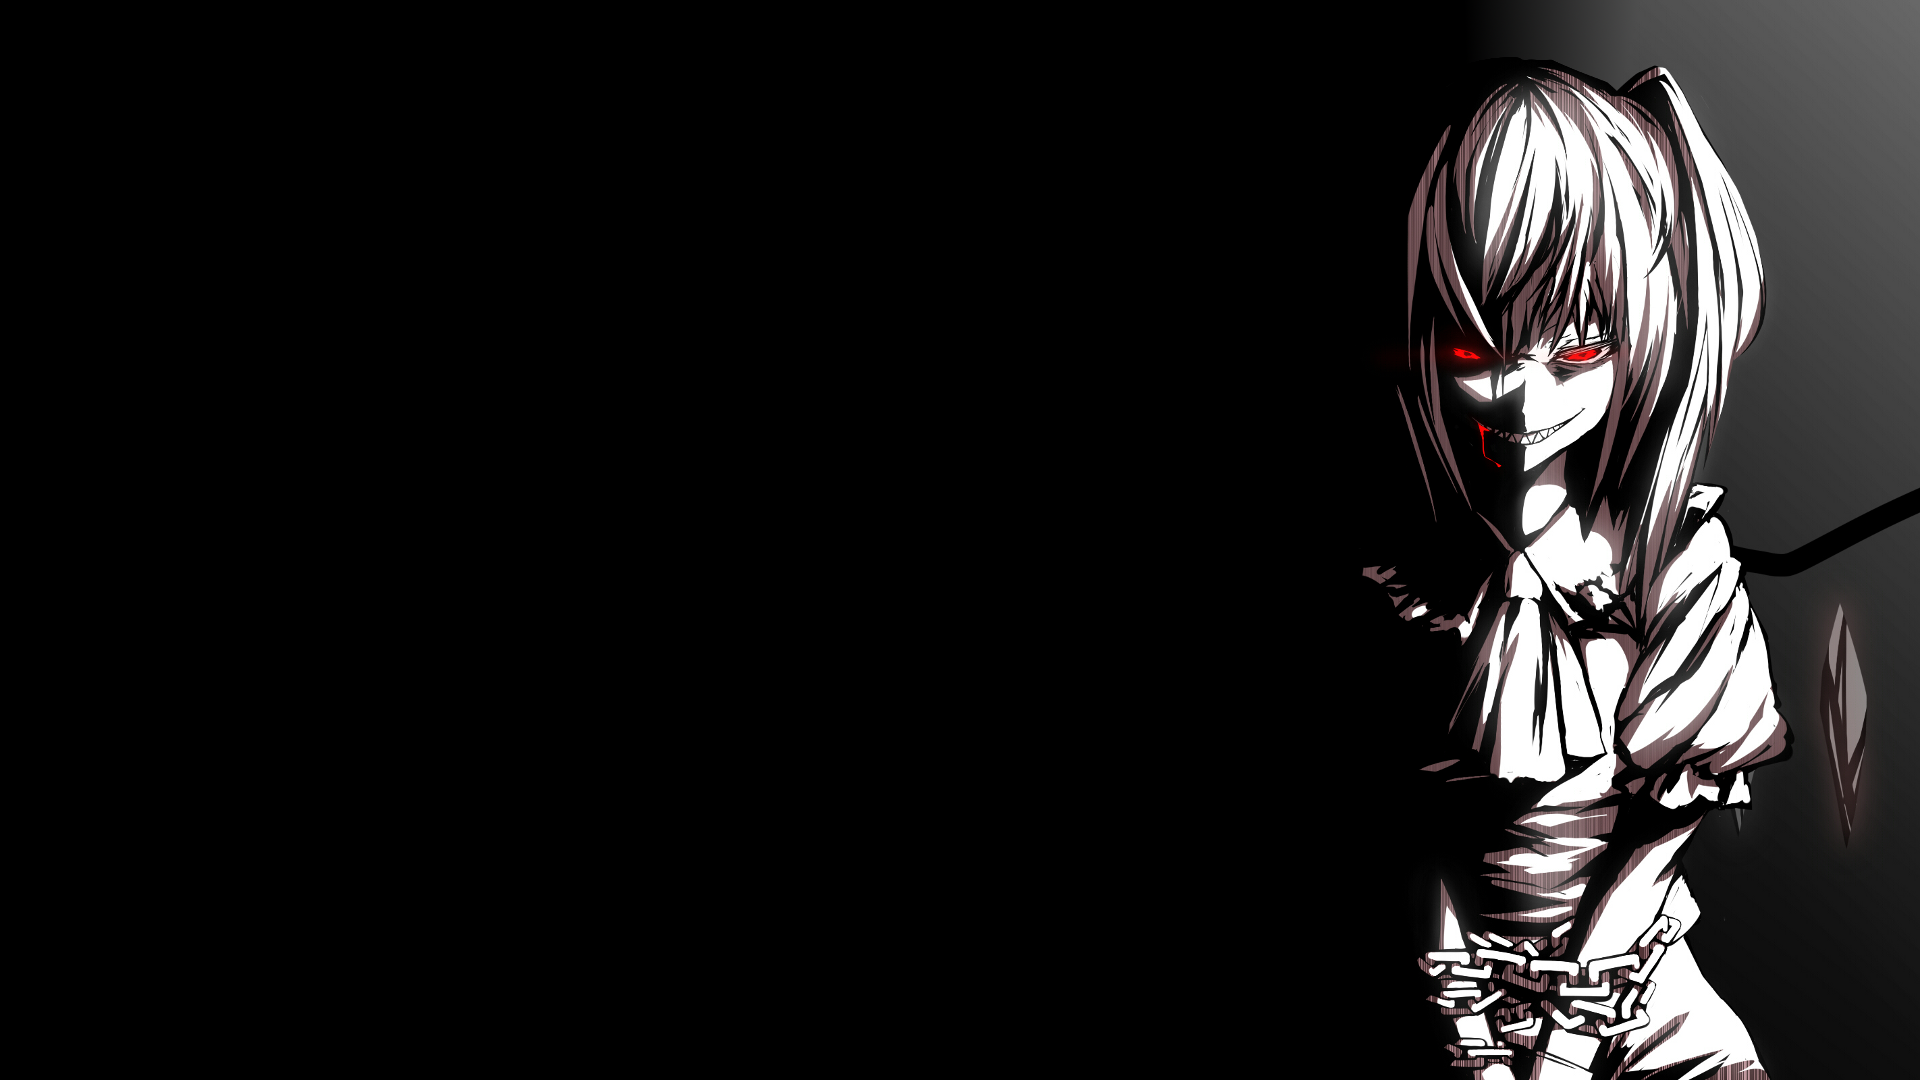 Anime-HD-Images-wallpaper-wp3802445